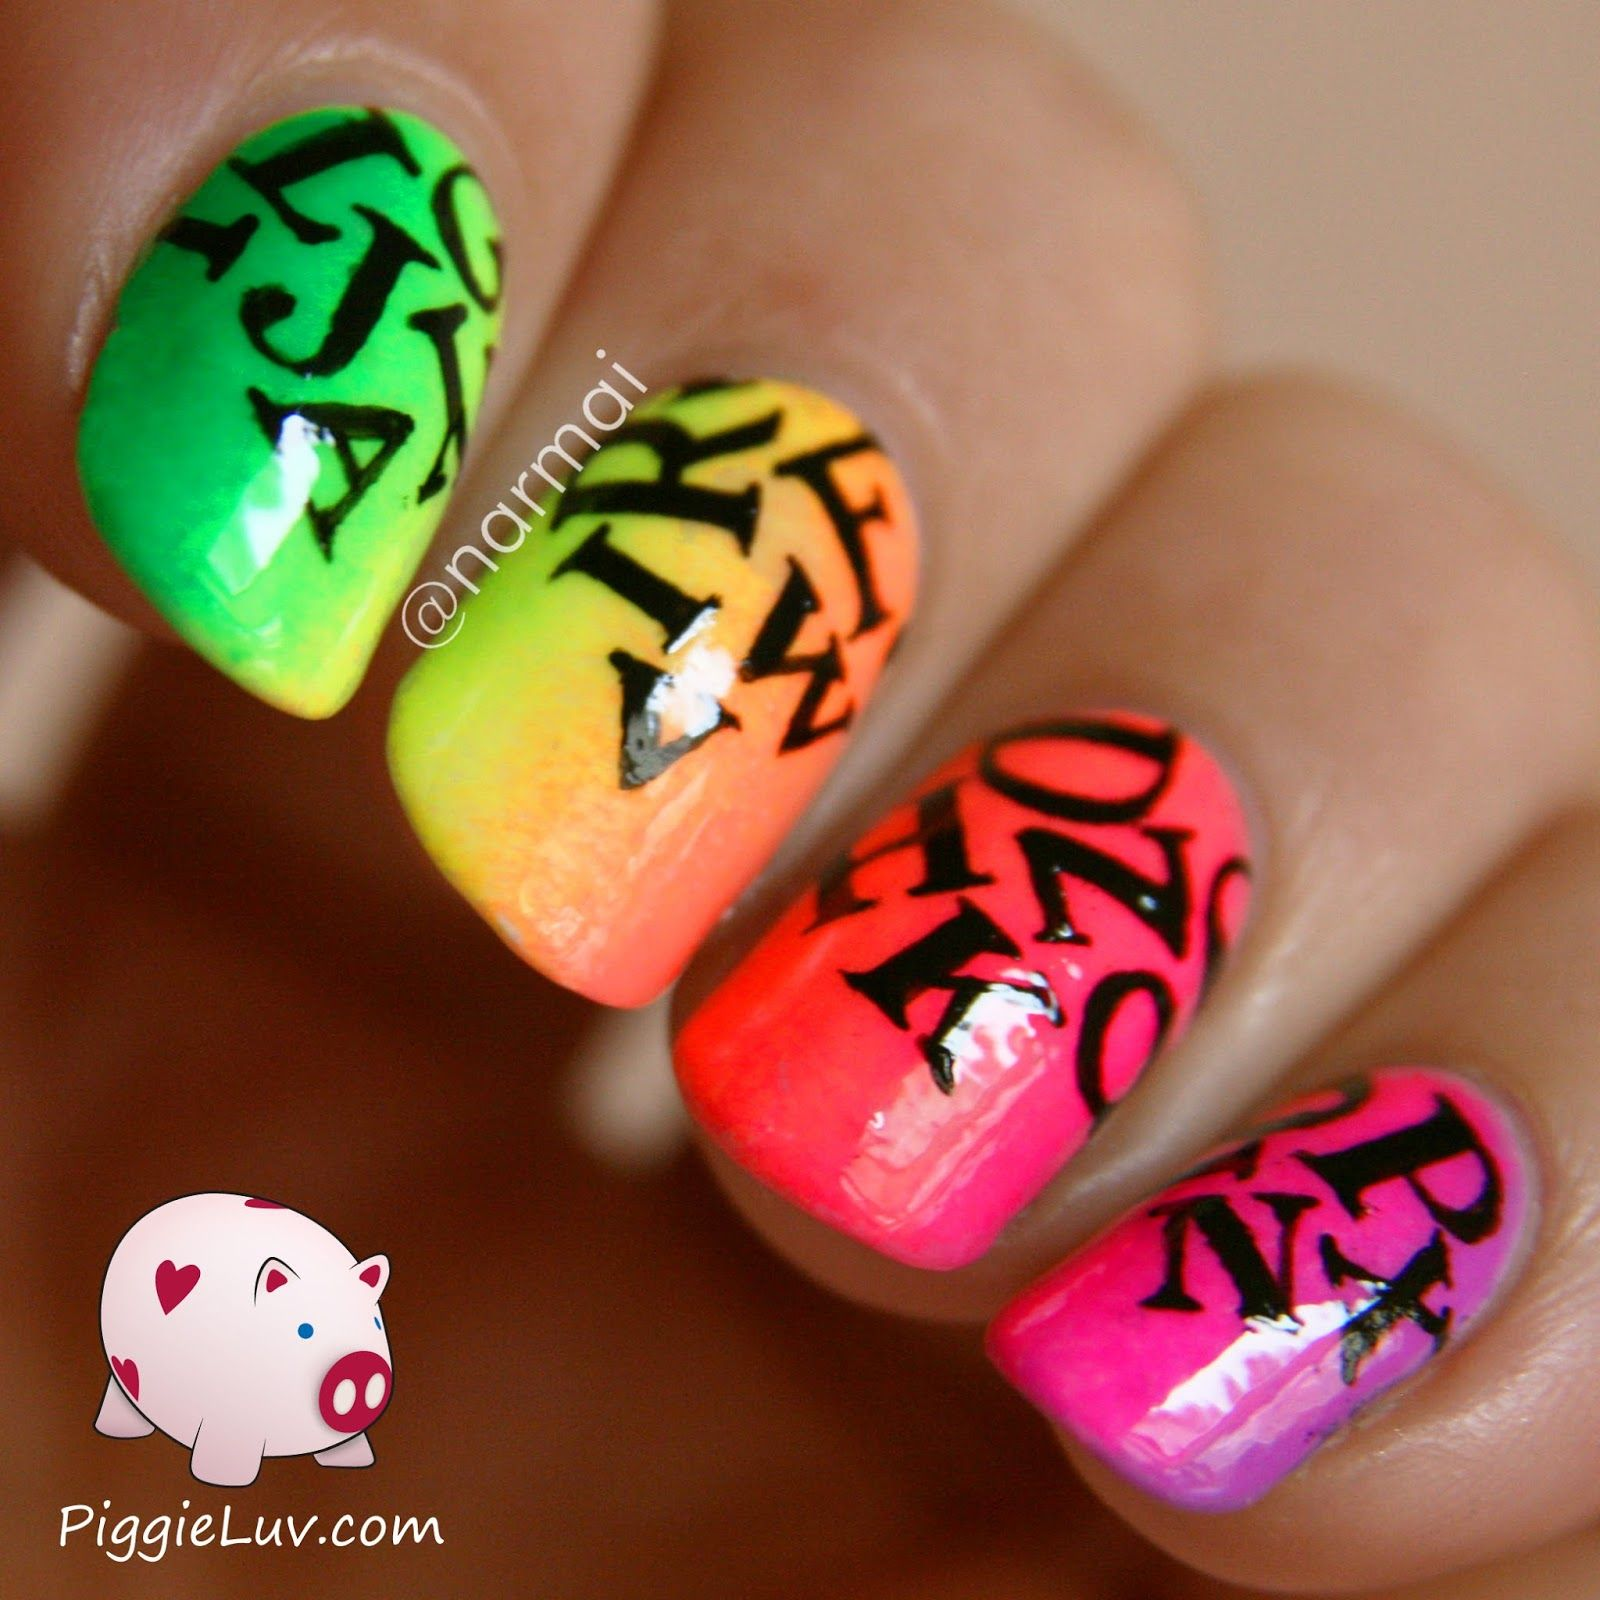 Neon letter rain nail art | Neon nails, Fabulous nails and Creative ...